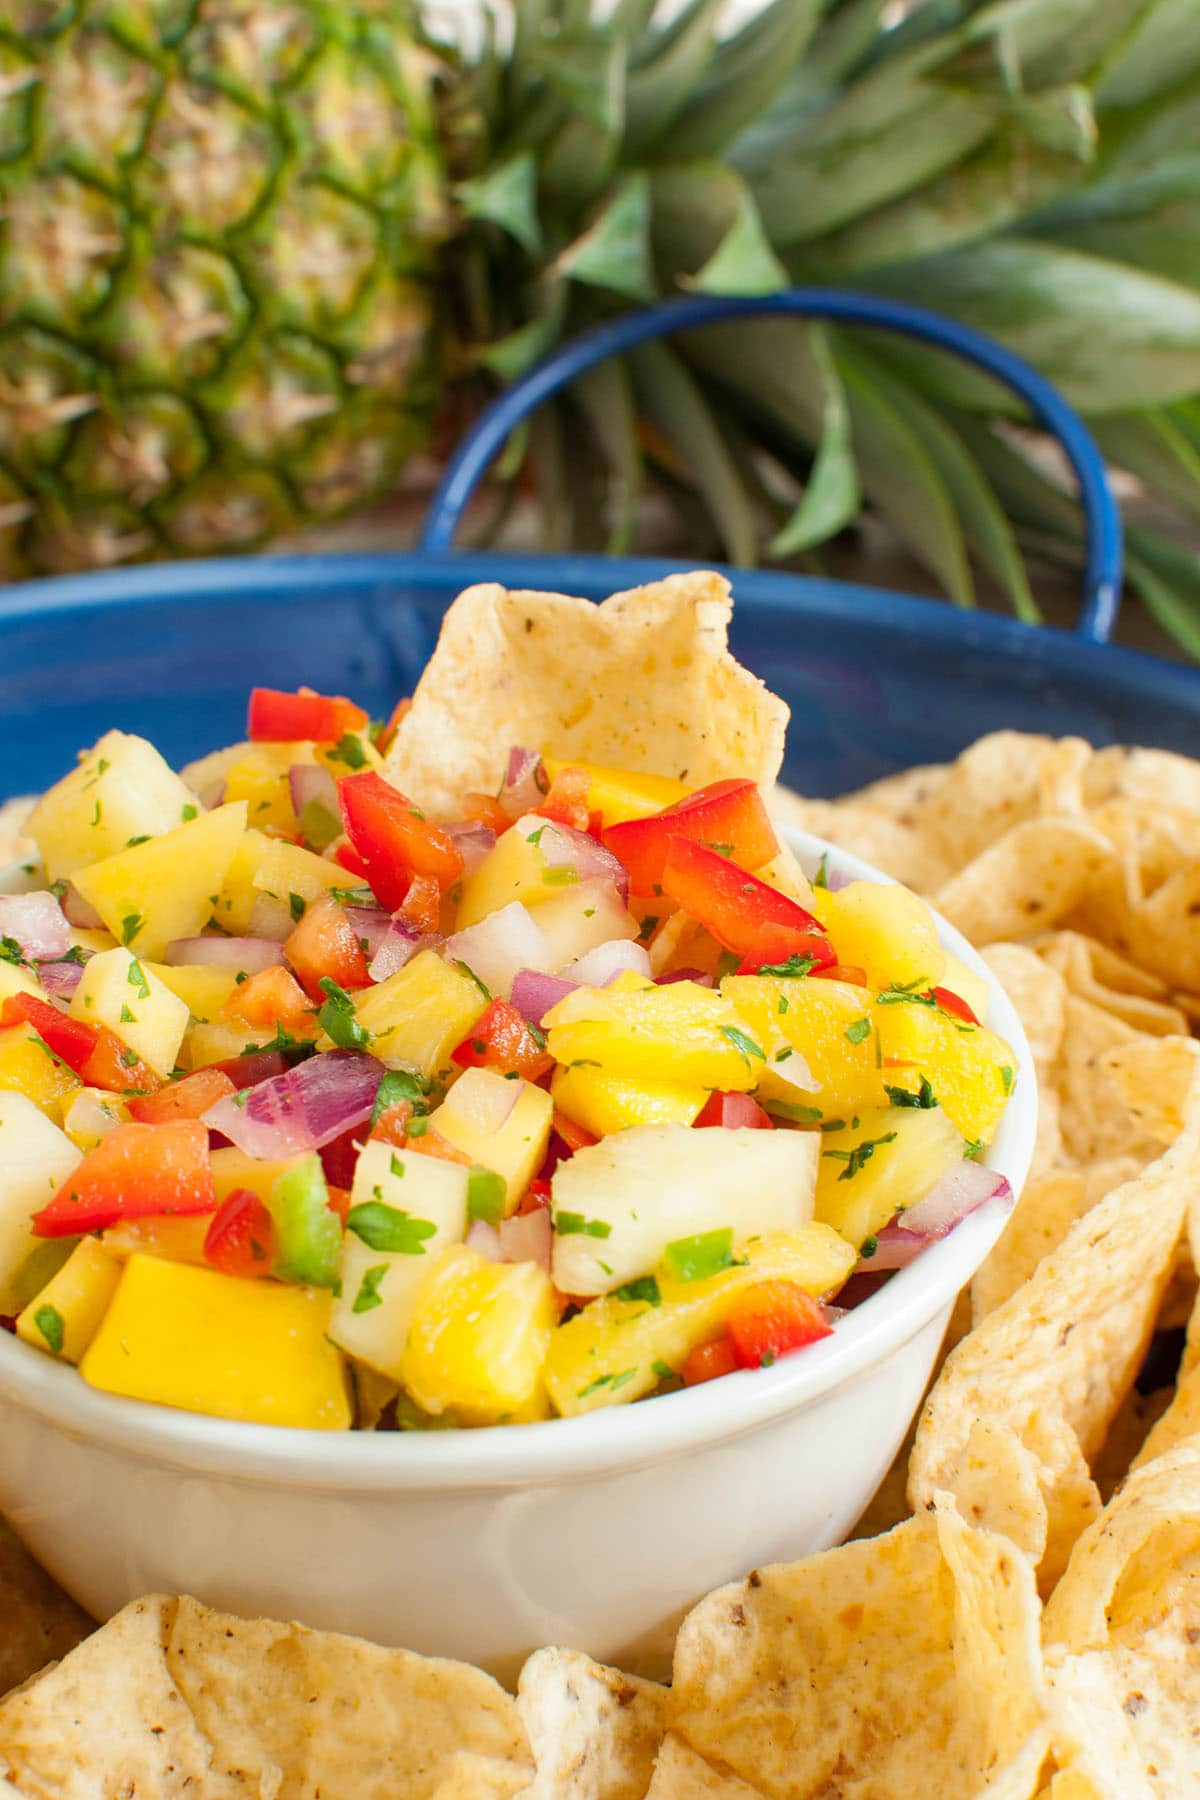 chip dipped into bowl of pineapple mango salsa